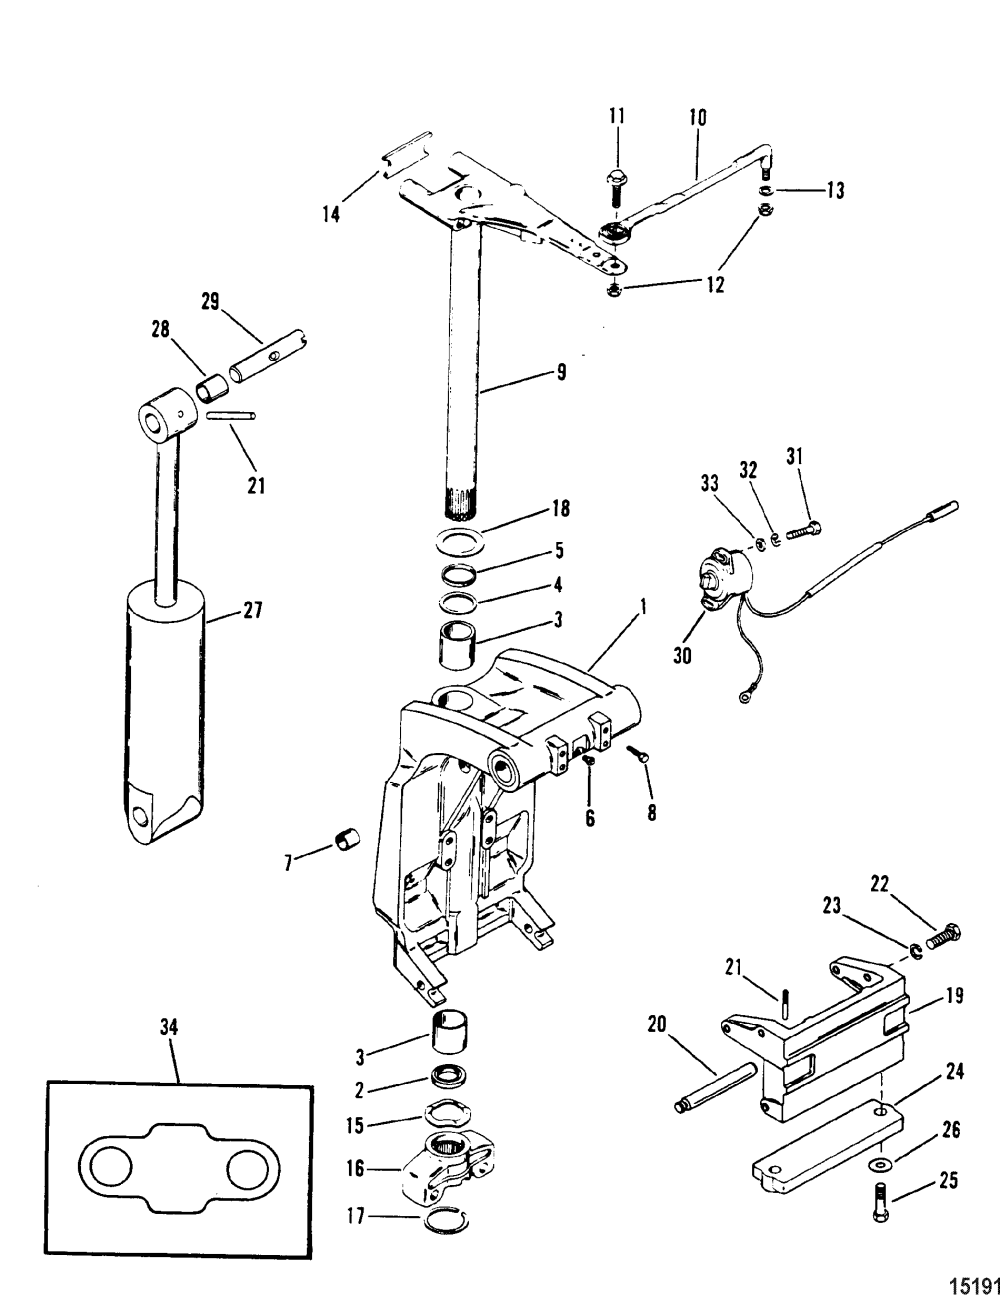 medium resolution of swivel bracket and steering arm for mariner mercury sea ray 100 diagram of 1990 mercury marine sea ray 9100412wd electrical components